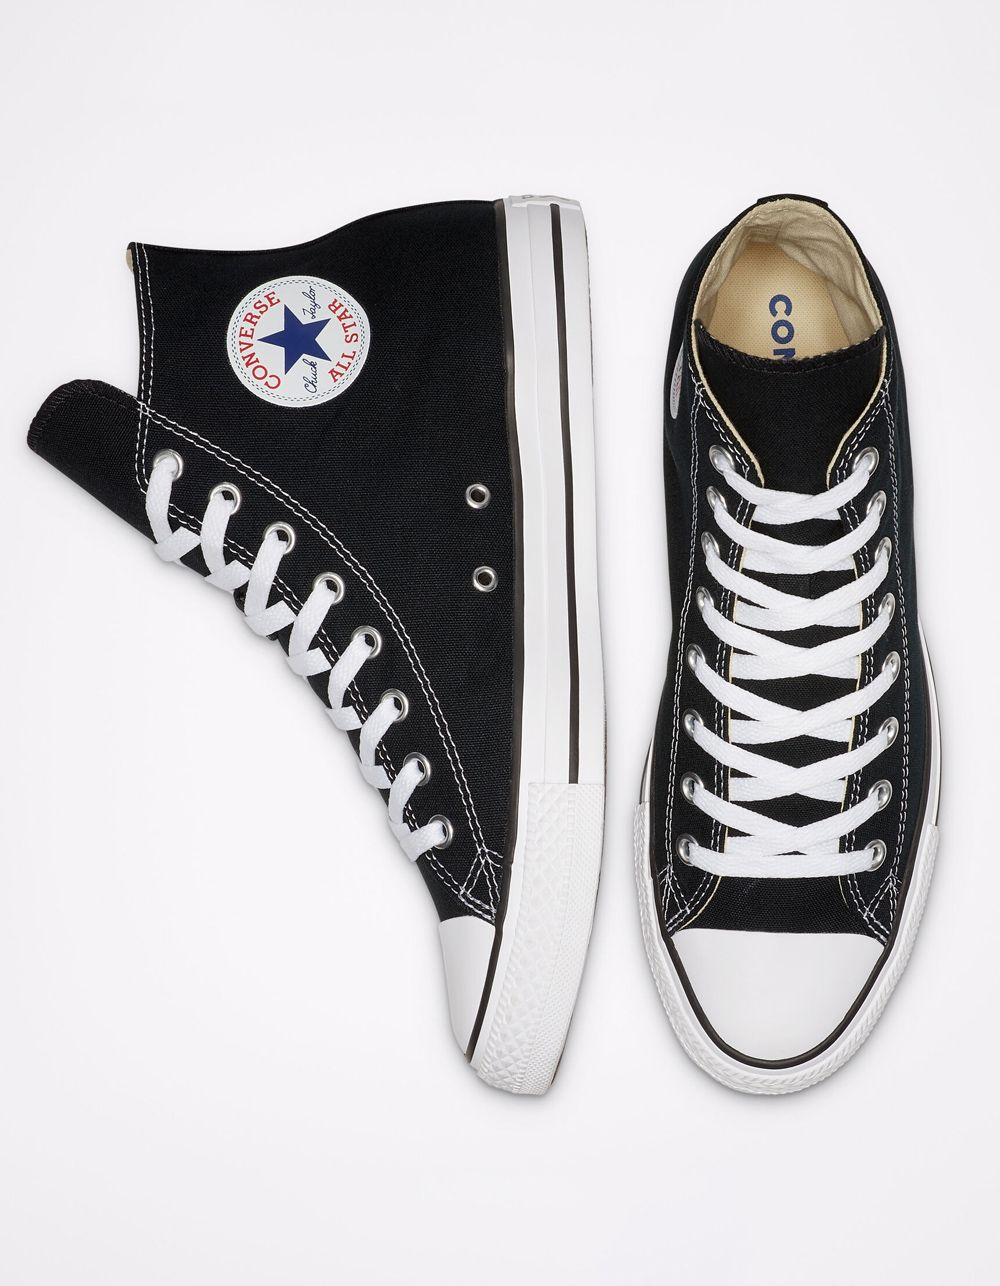 Classic Chucks! Converse Chuck Taylor All Star High Top black shoes. Canvas upper. Padded insole. Rubber toe cap. Vulcanized rubber outsole. Converse All Star heel badge. Converse All Star logo on inside of ankle. Imported.